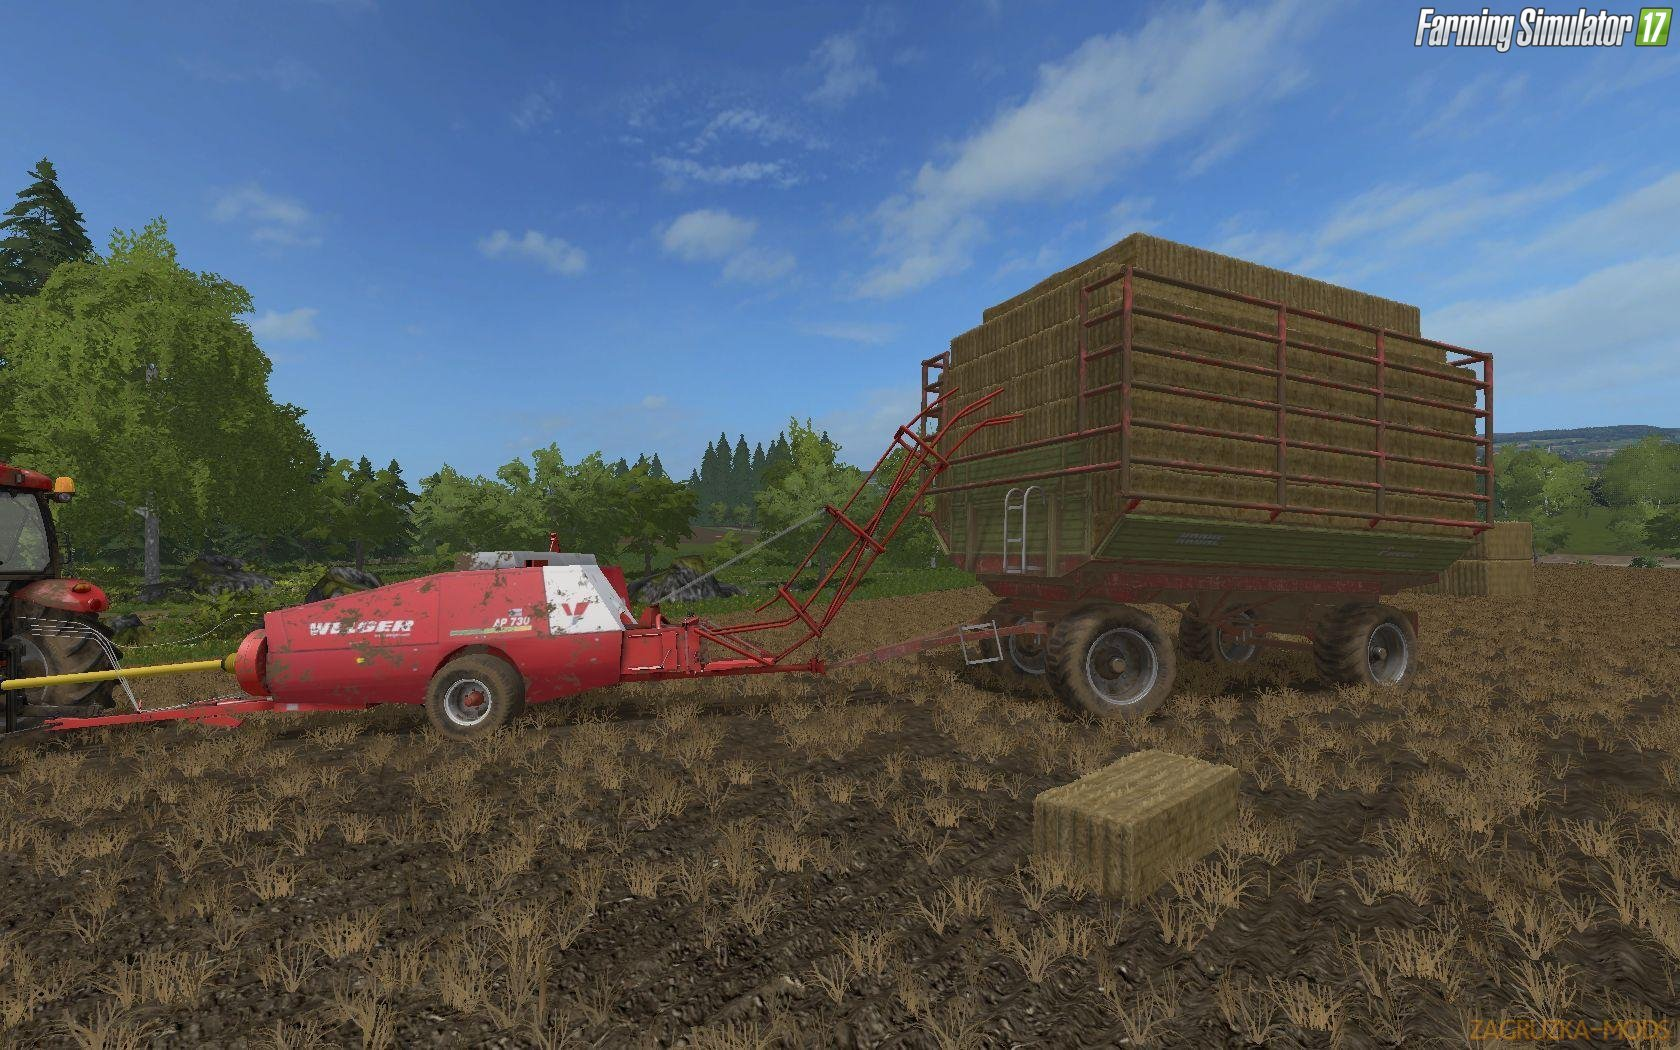 Welger Kleinballenpresse and Krone grain / collection vans v2.0 for Fs17